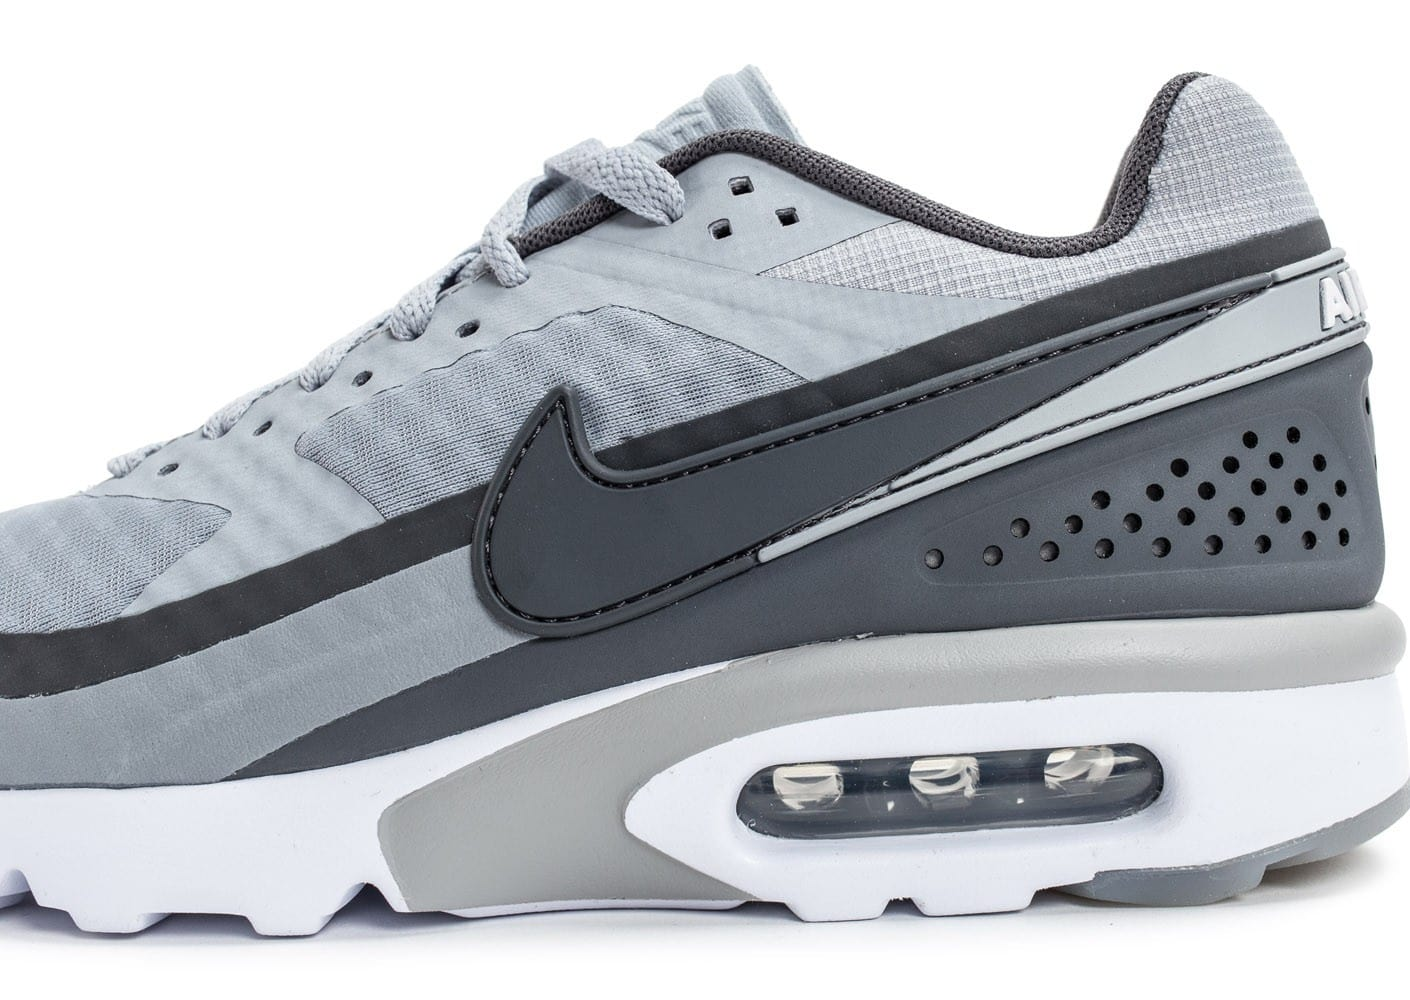 check out 3675c 19bcf chaussures nike air max bw ultra grise vue details